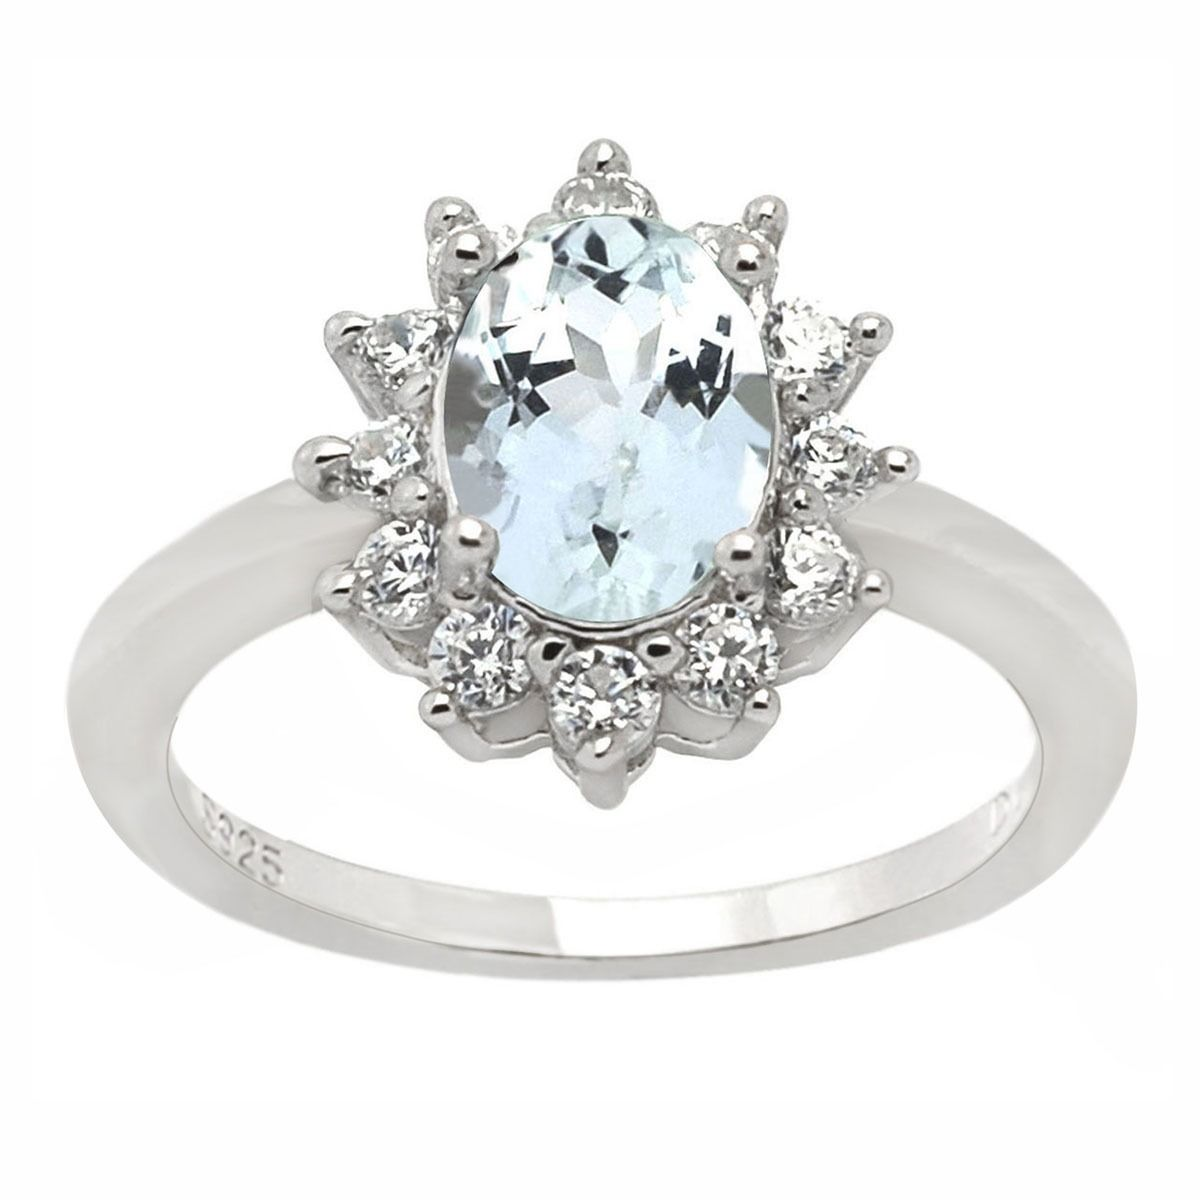 De Buman Sterling Silver Aquamarine and Cubic Zirconia Ring (Size 5.25), Women's, White